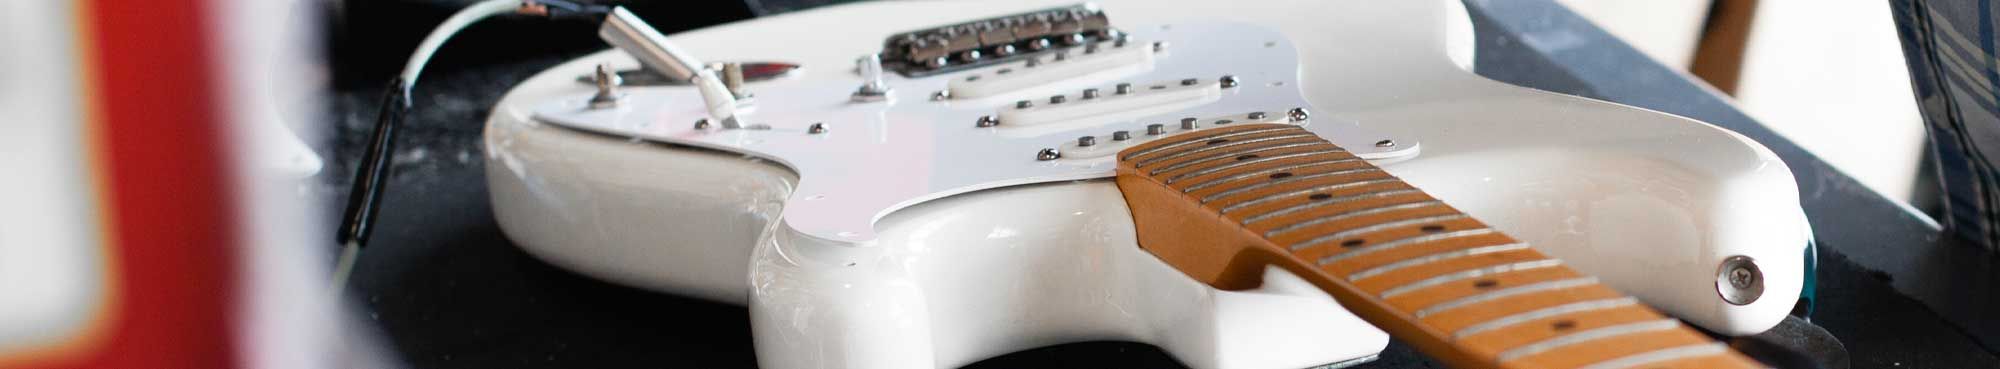 Guitar Setups and Repairs